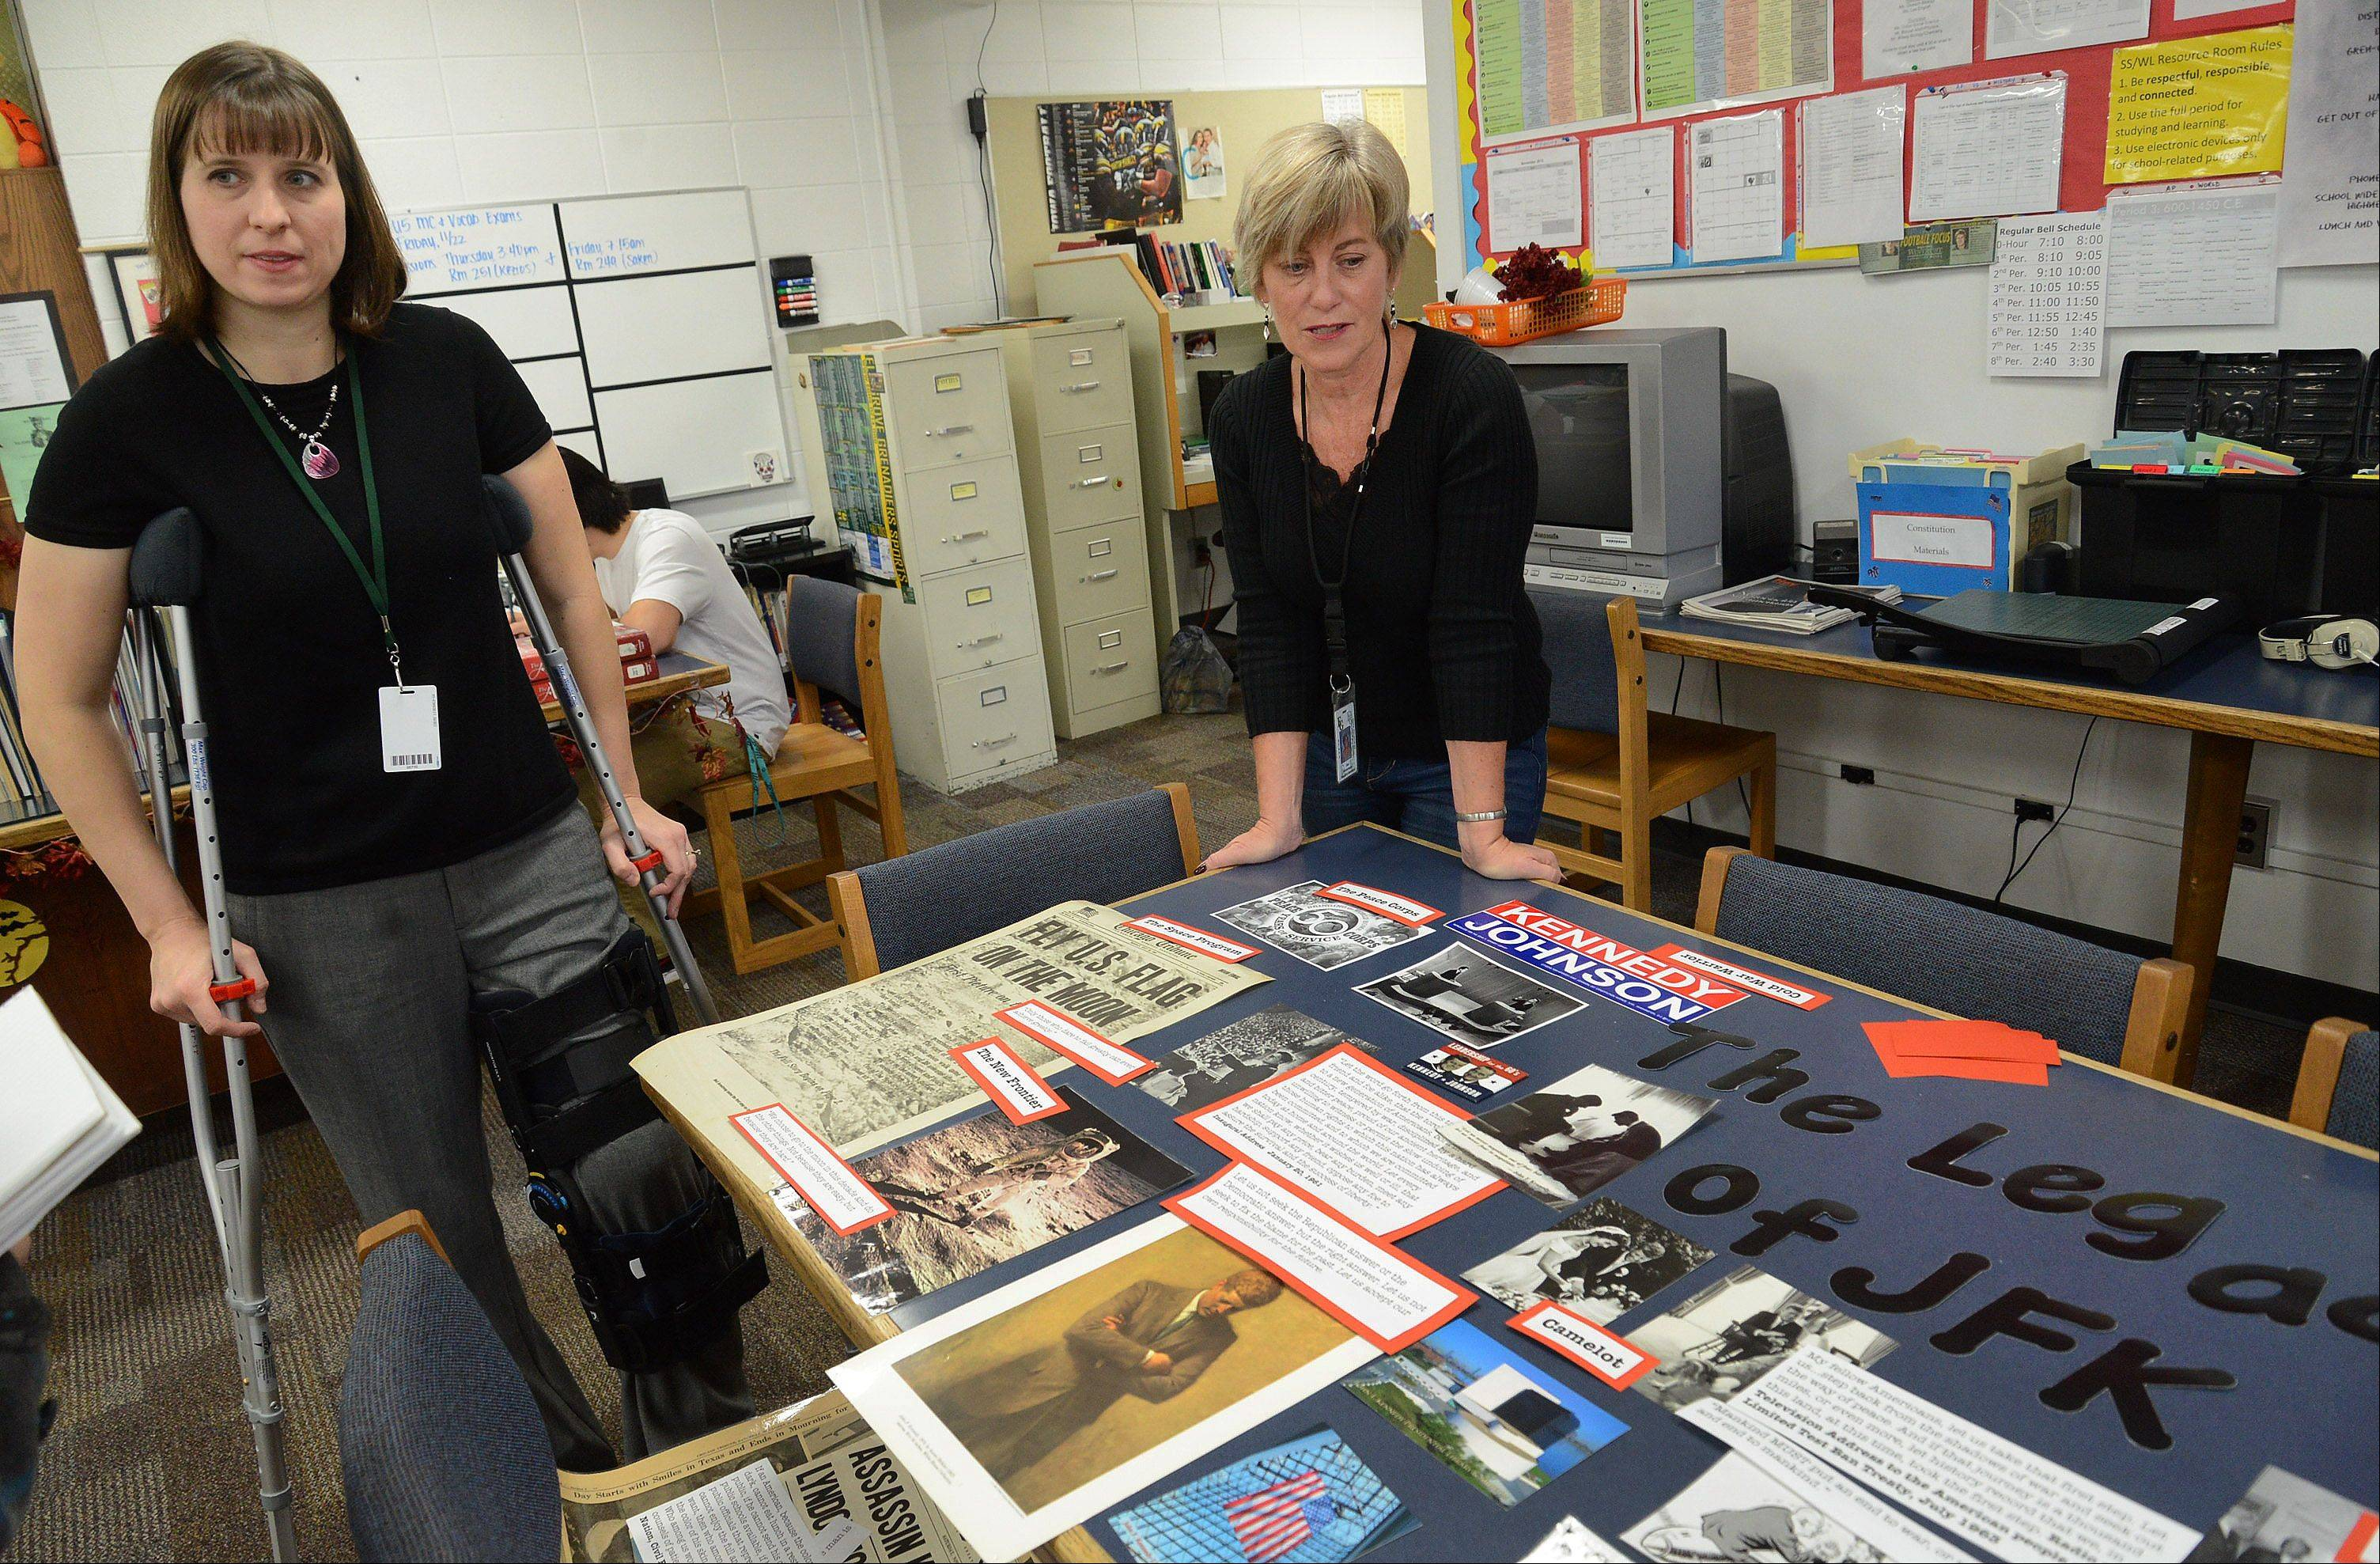 Teacher Mindy Perkins, left, and Resource Assistant Sue Montemayor pull together a display on the legacy of JFK.